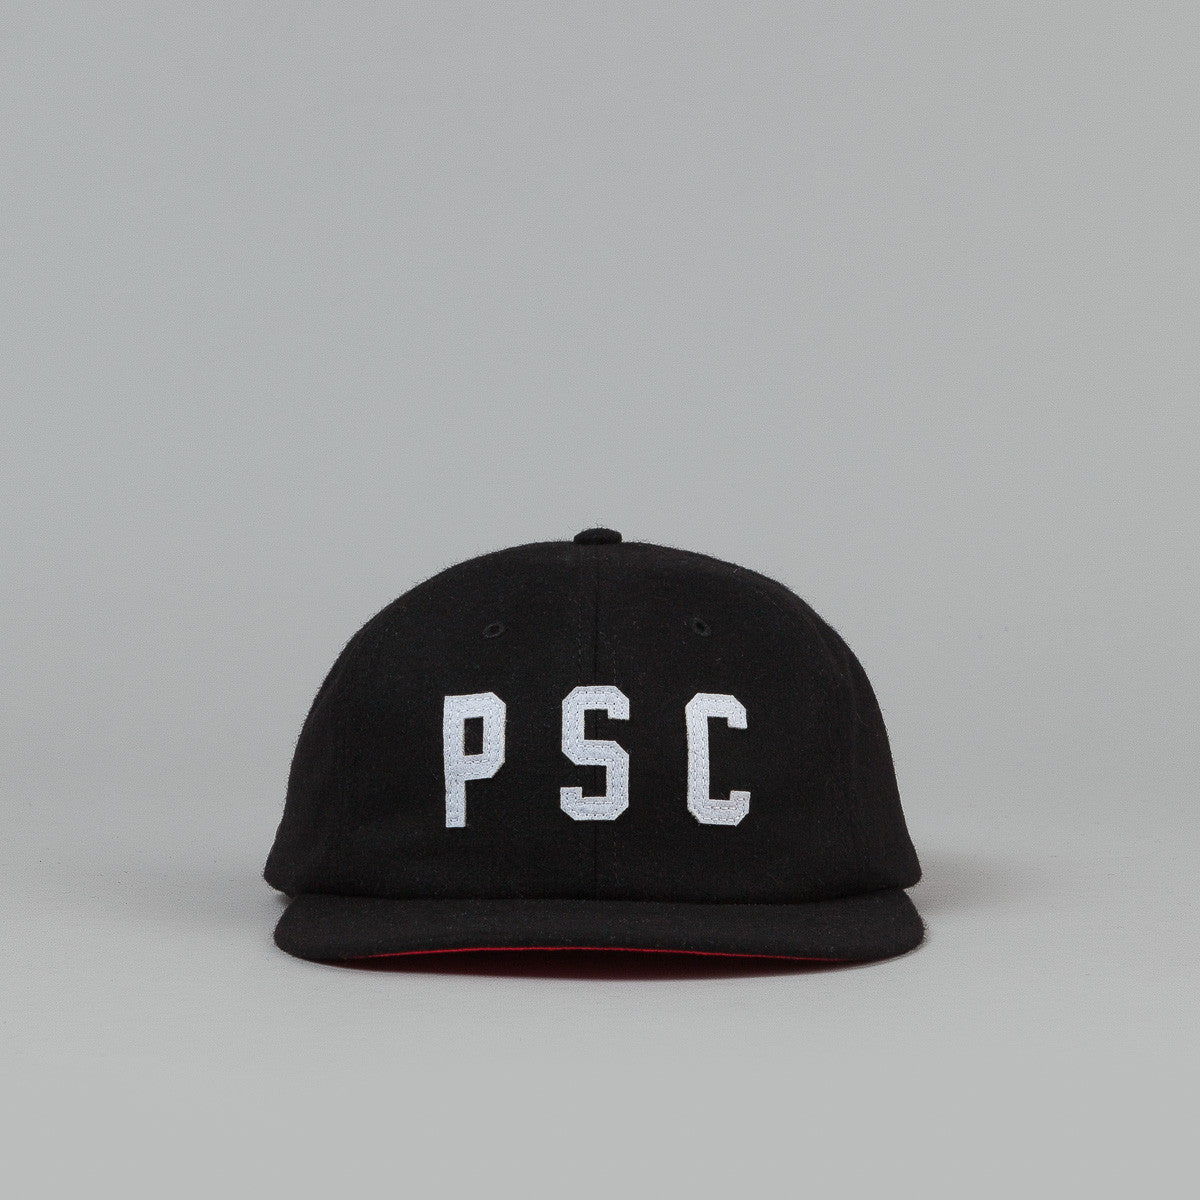 Polar PSC Ground Crew Wool Cap - Black / Red